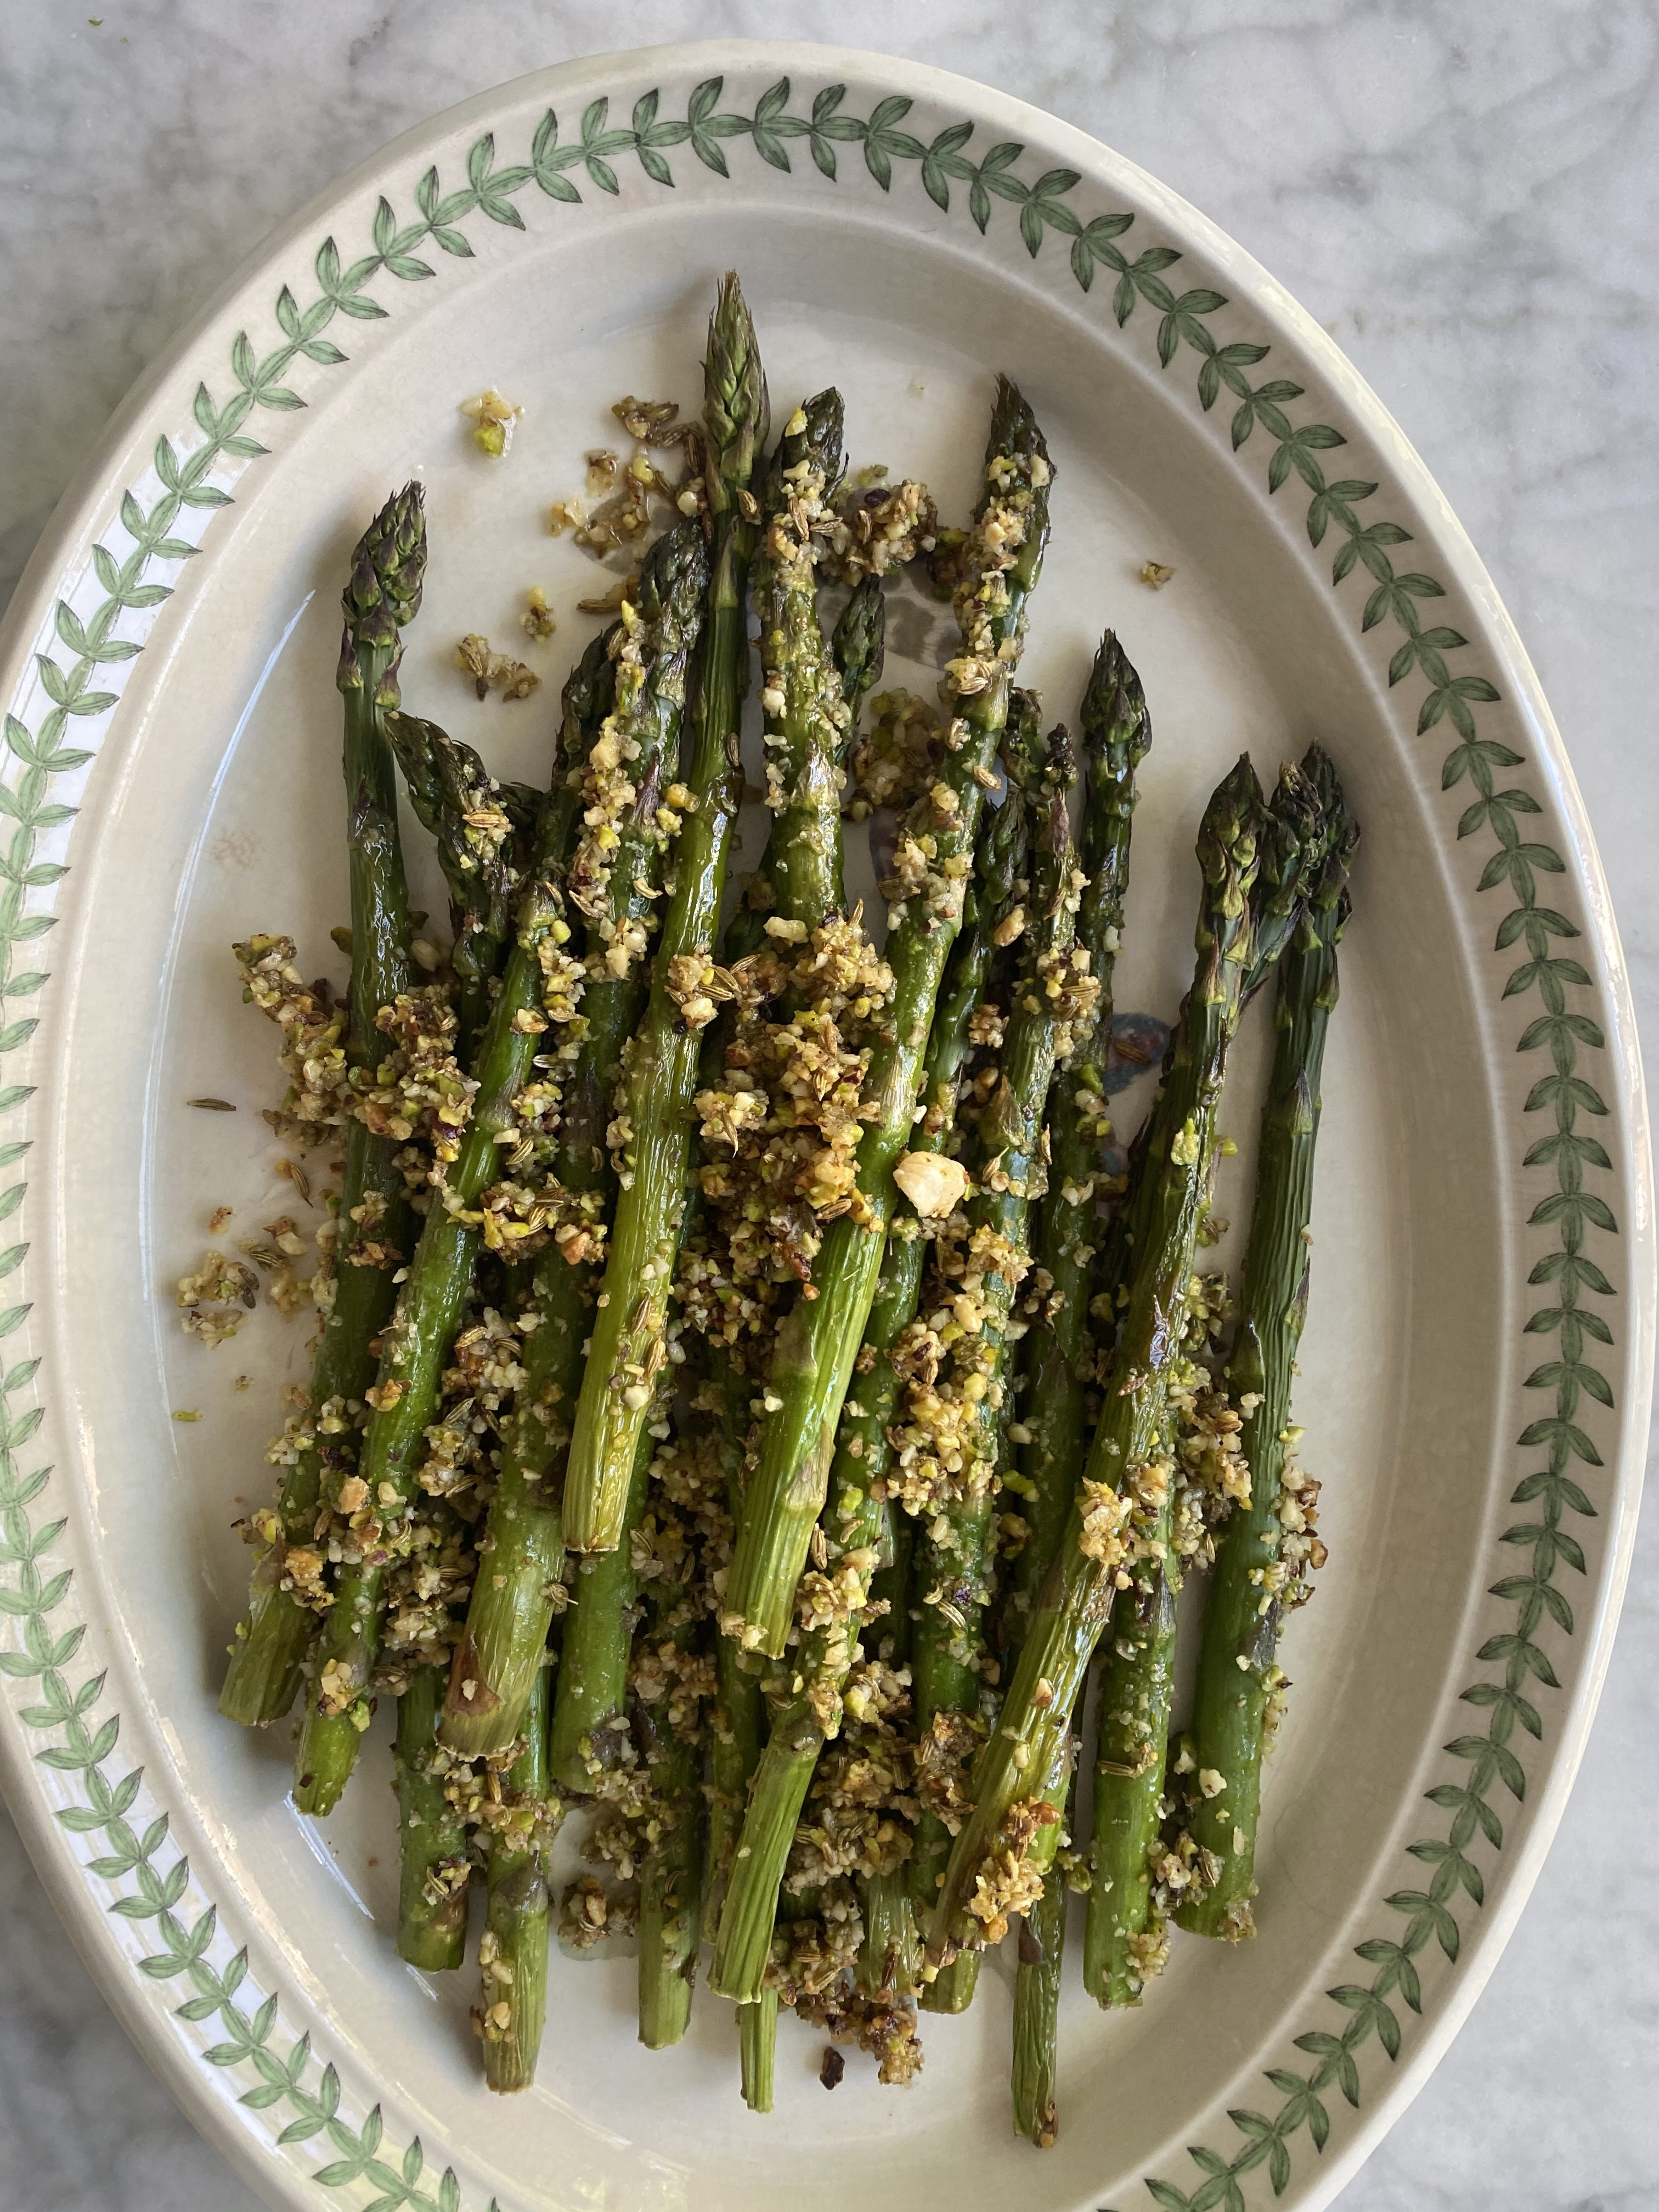 Asparagus, pistachios and fennel seeds